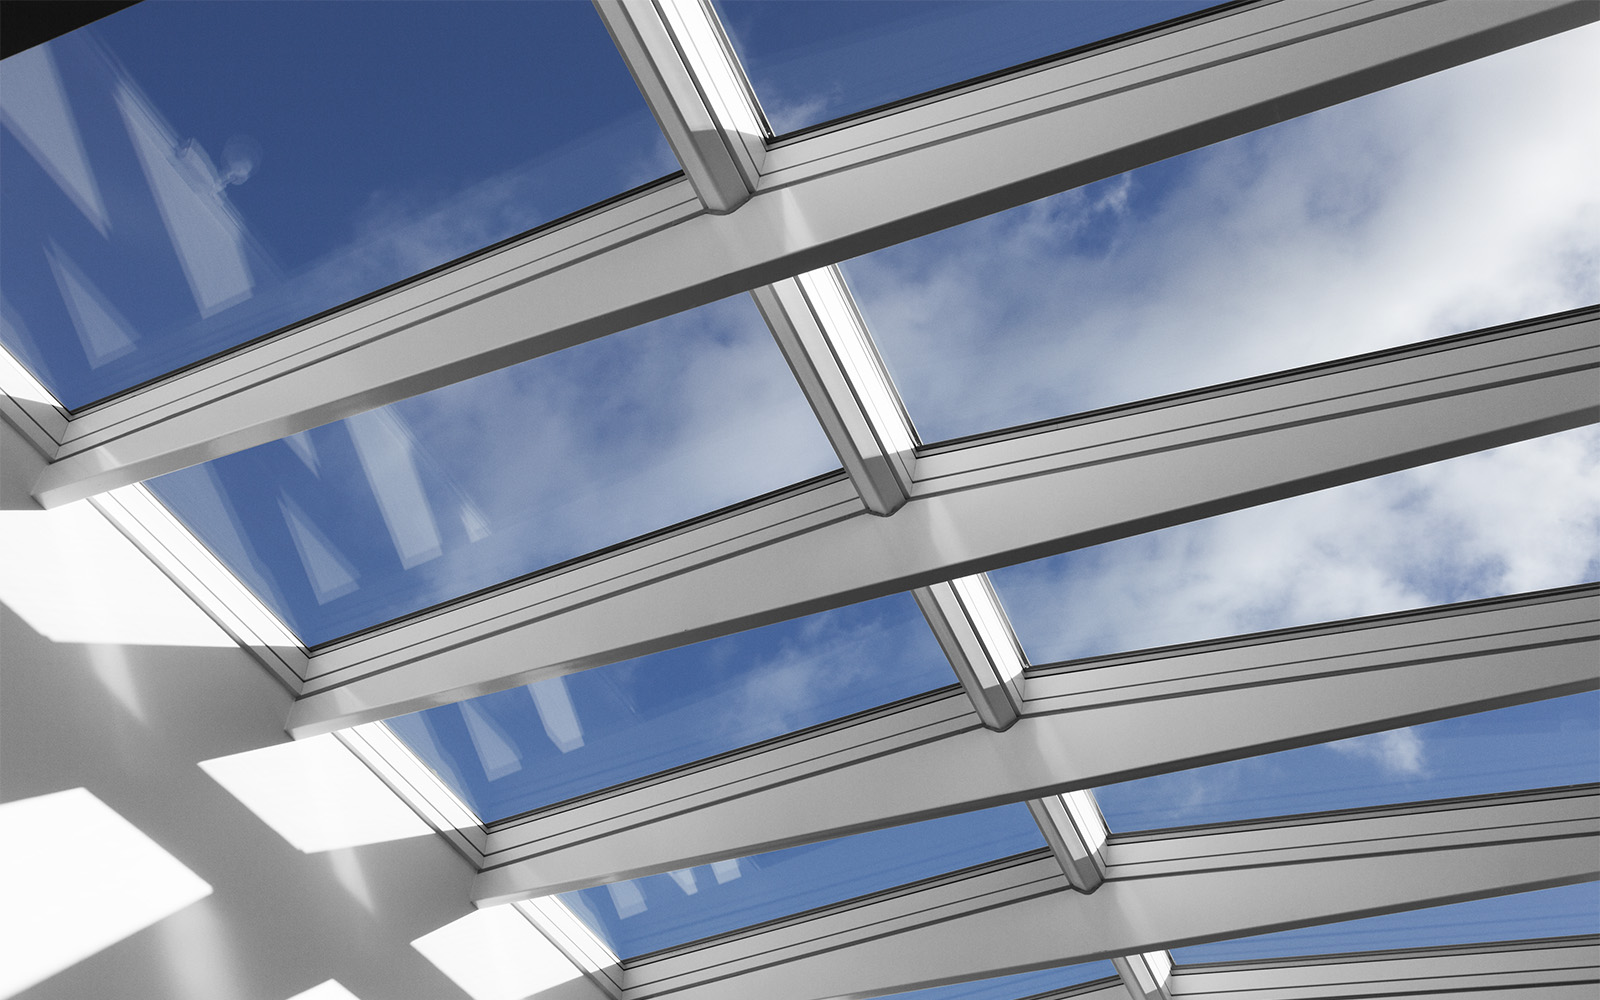 Clear blue sky view through roof skylights